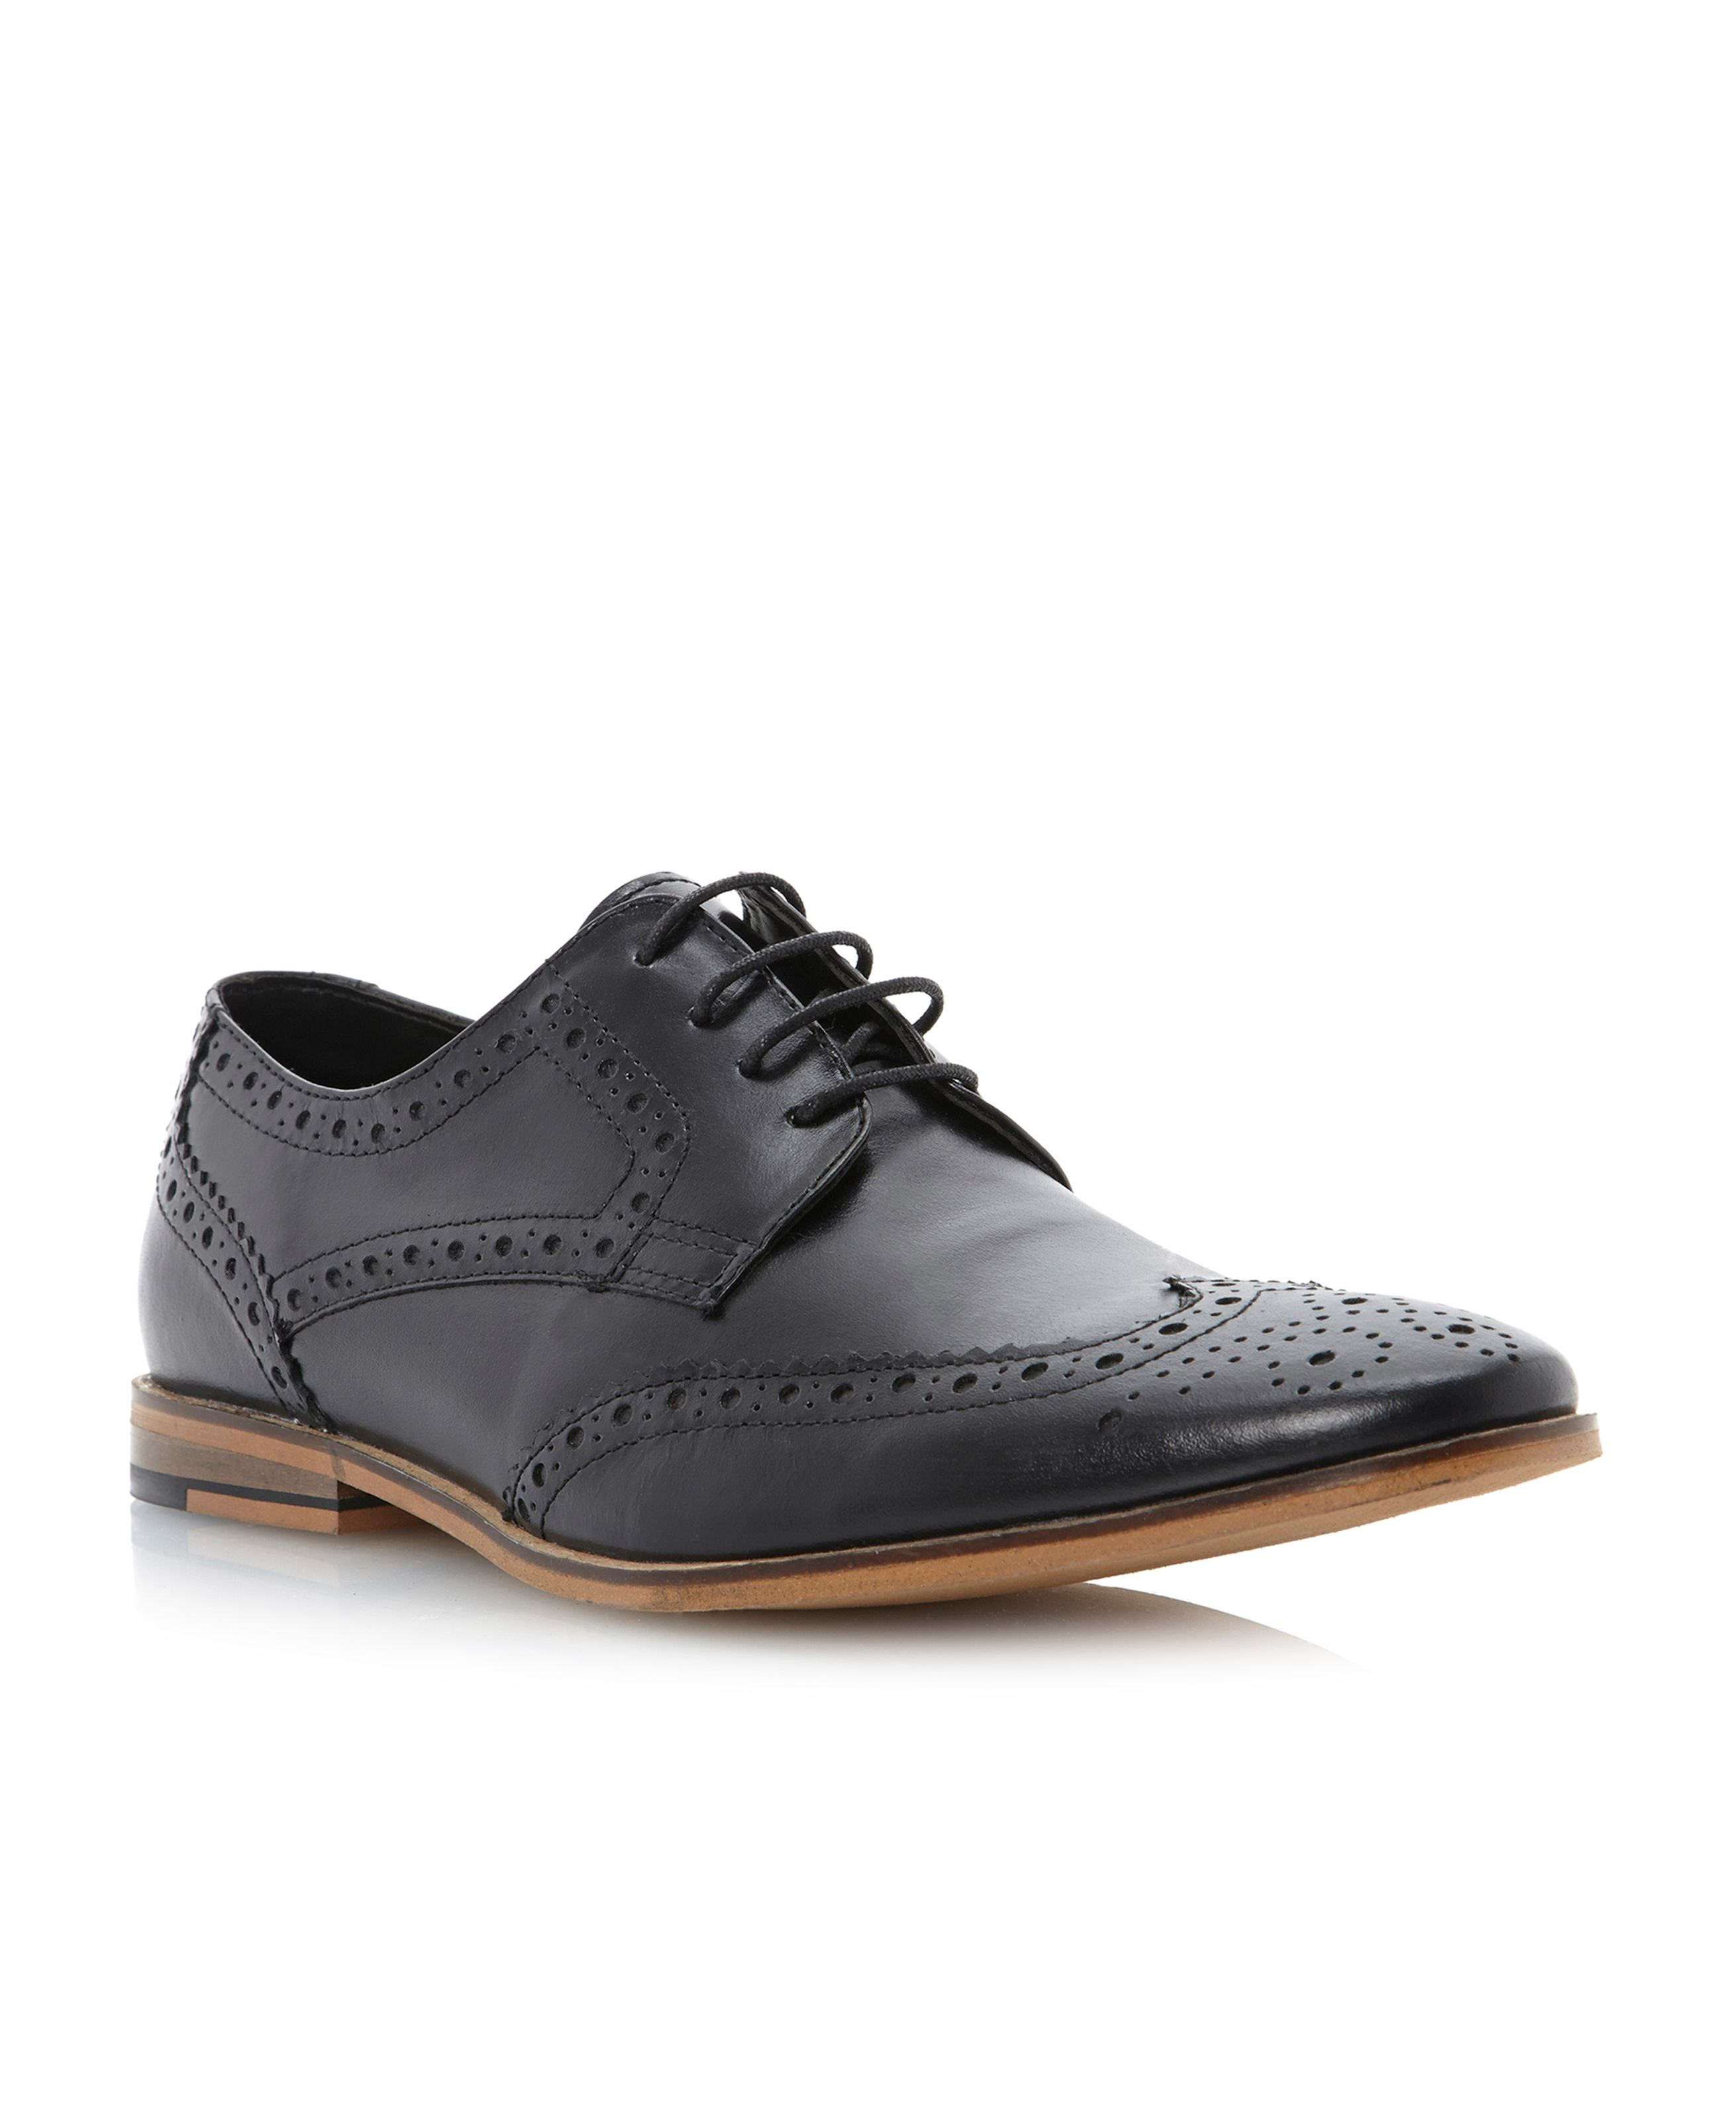 Brompton casual brogue lace up